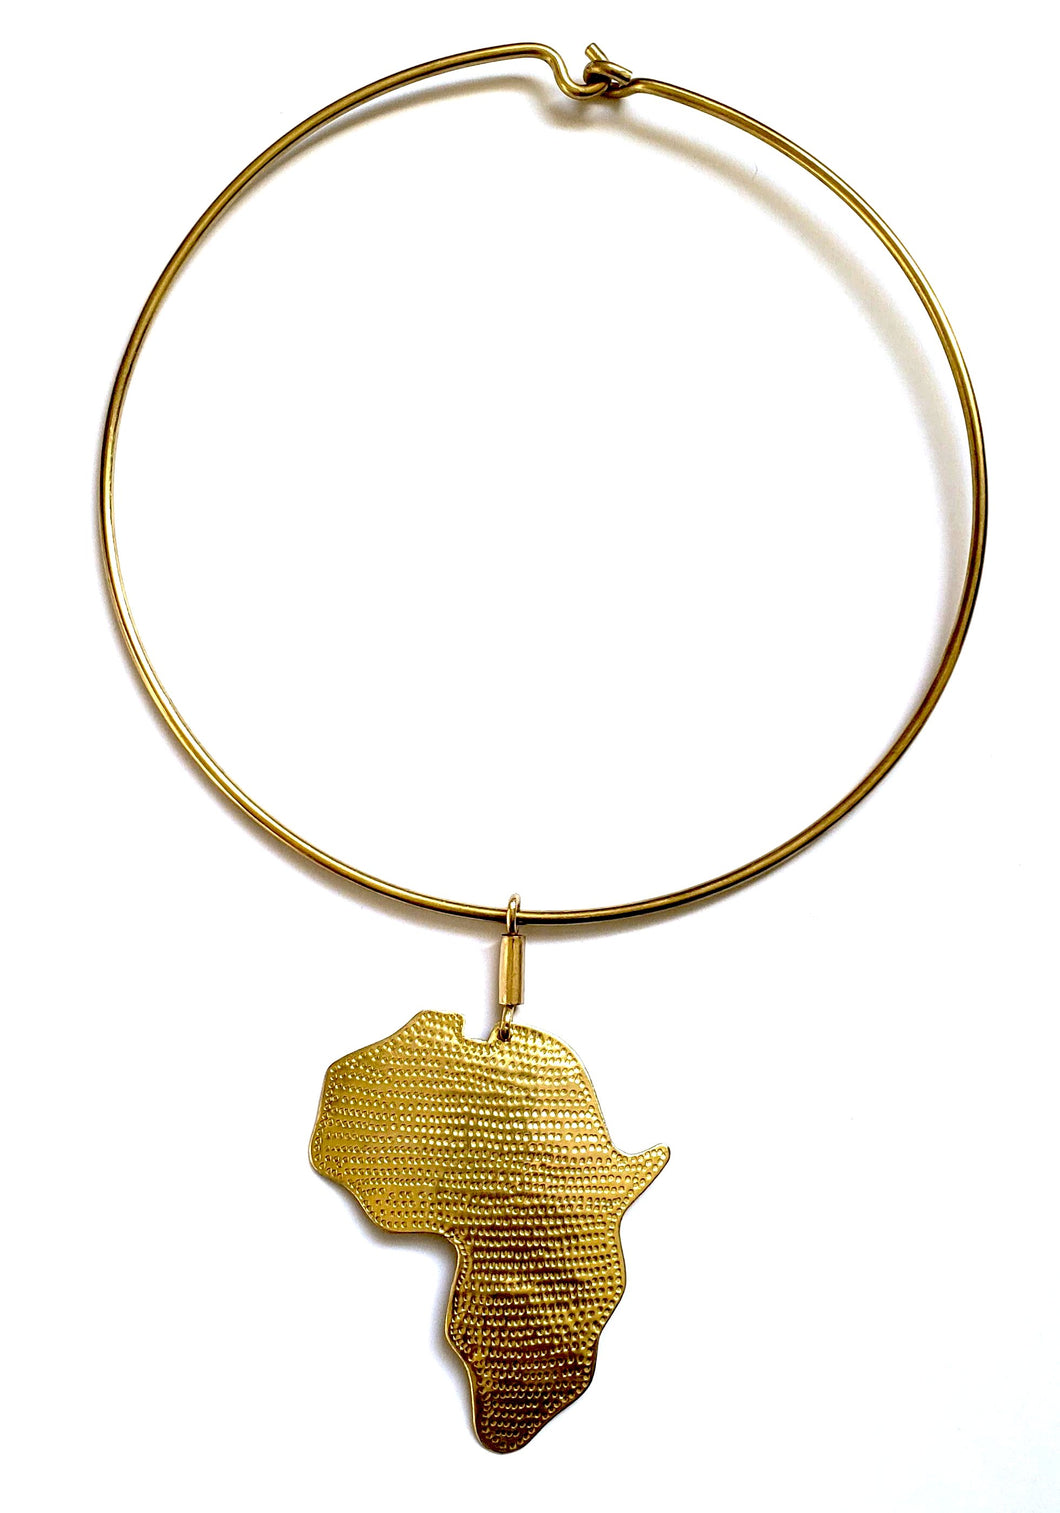 Maridadi African Map Choker - The Afropolitan Shop